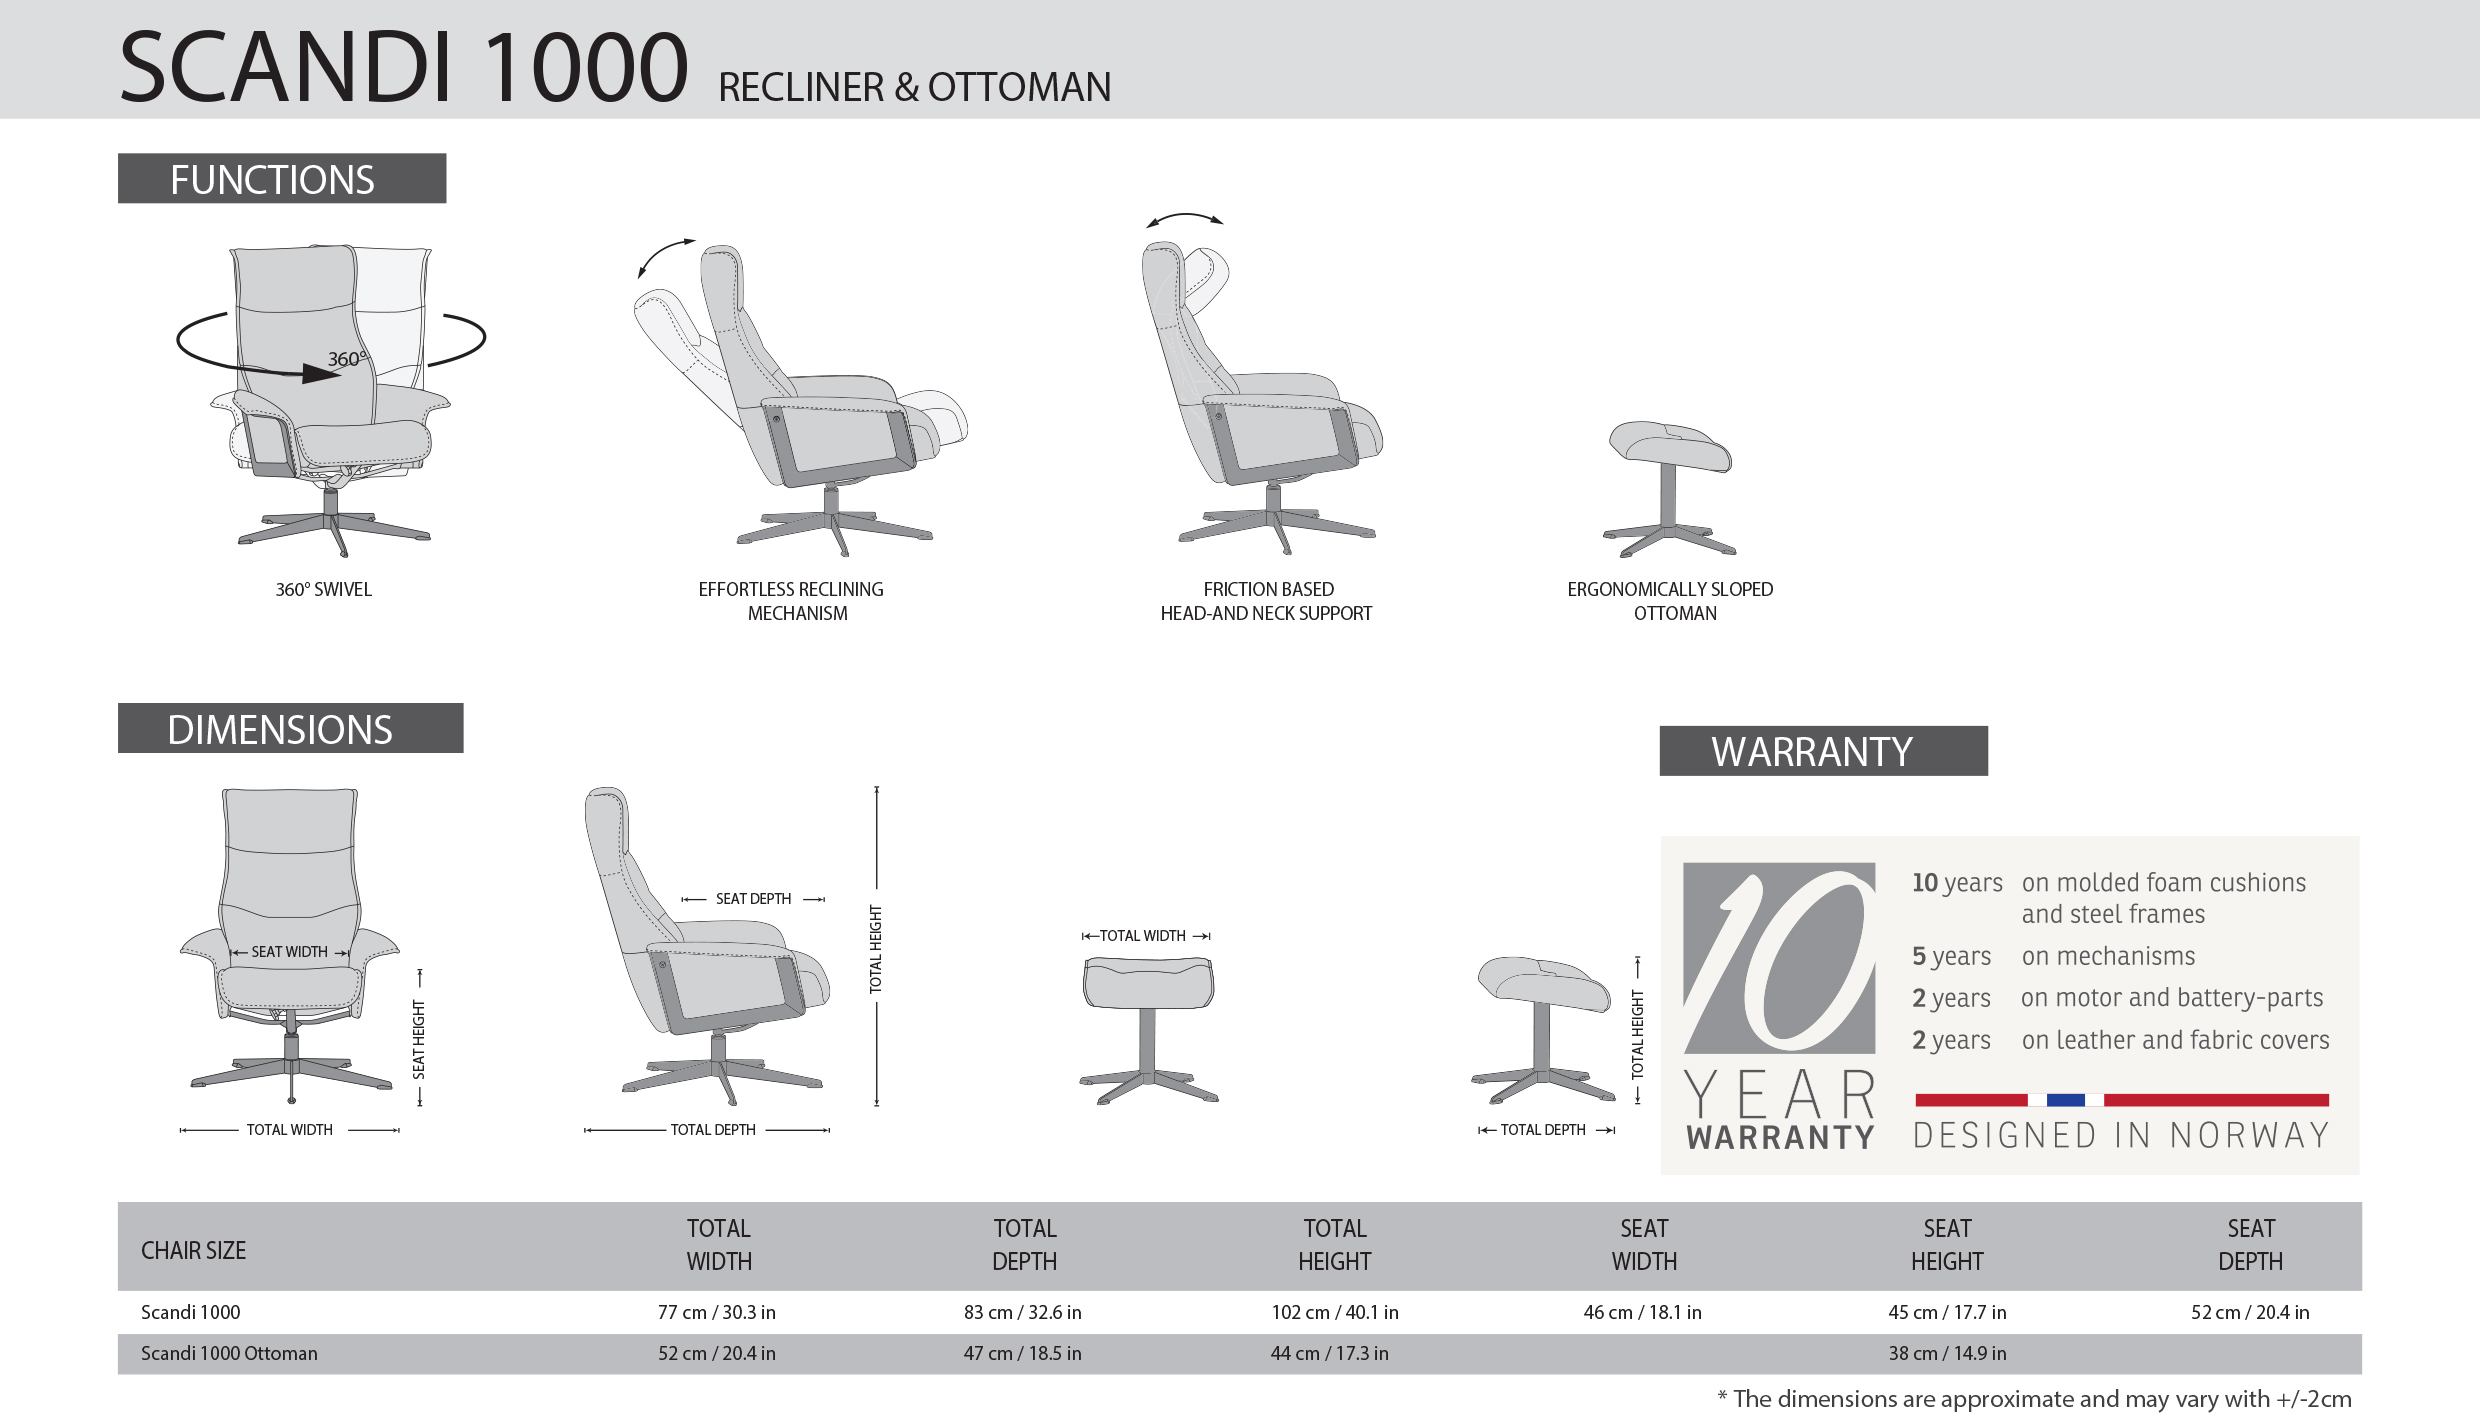 IMG Scandi 1000 Recliner Dimensions